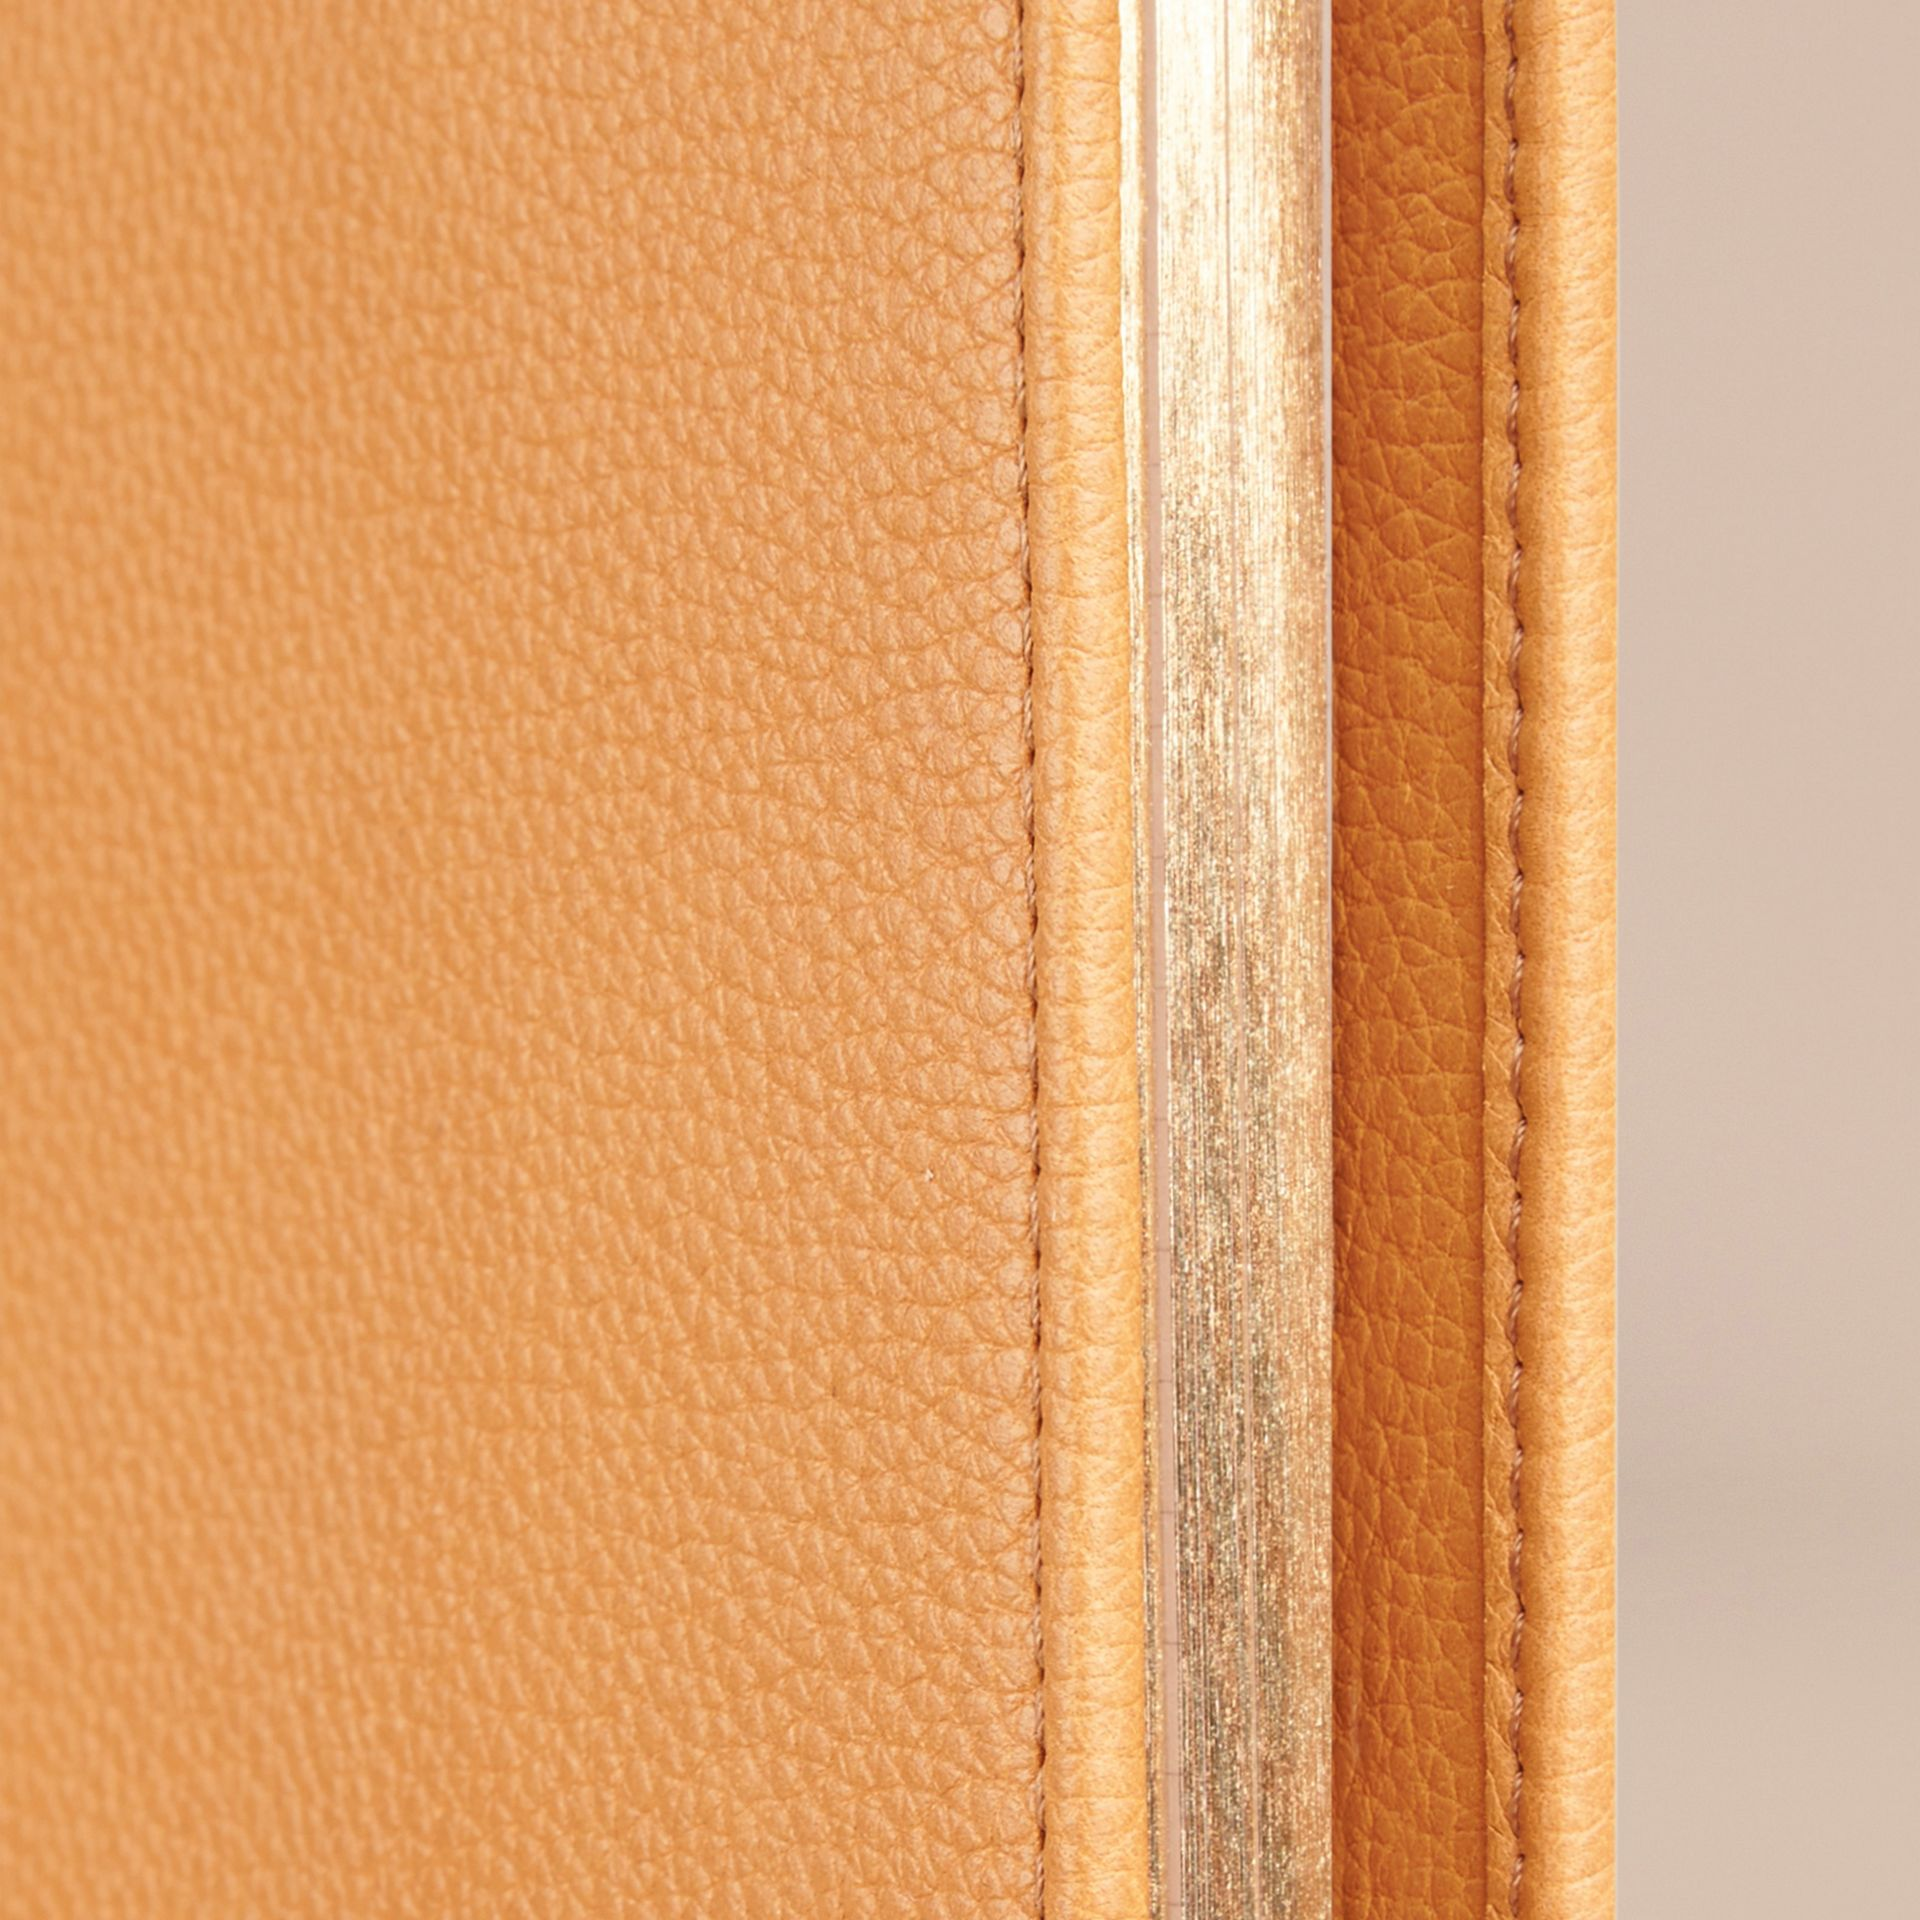 Grainy Leather 18 Month 2016/17 A5 Diary in Ochre Yellow | Burberry - gallery image 2